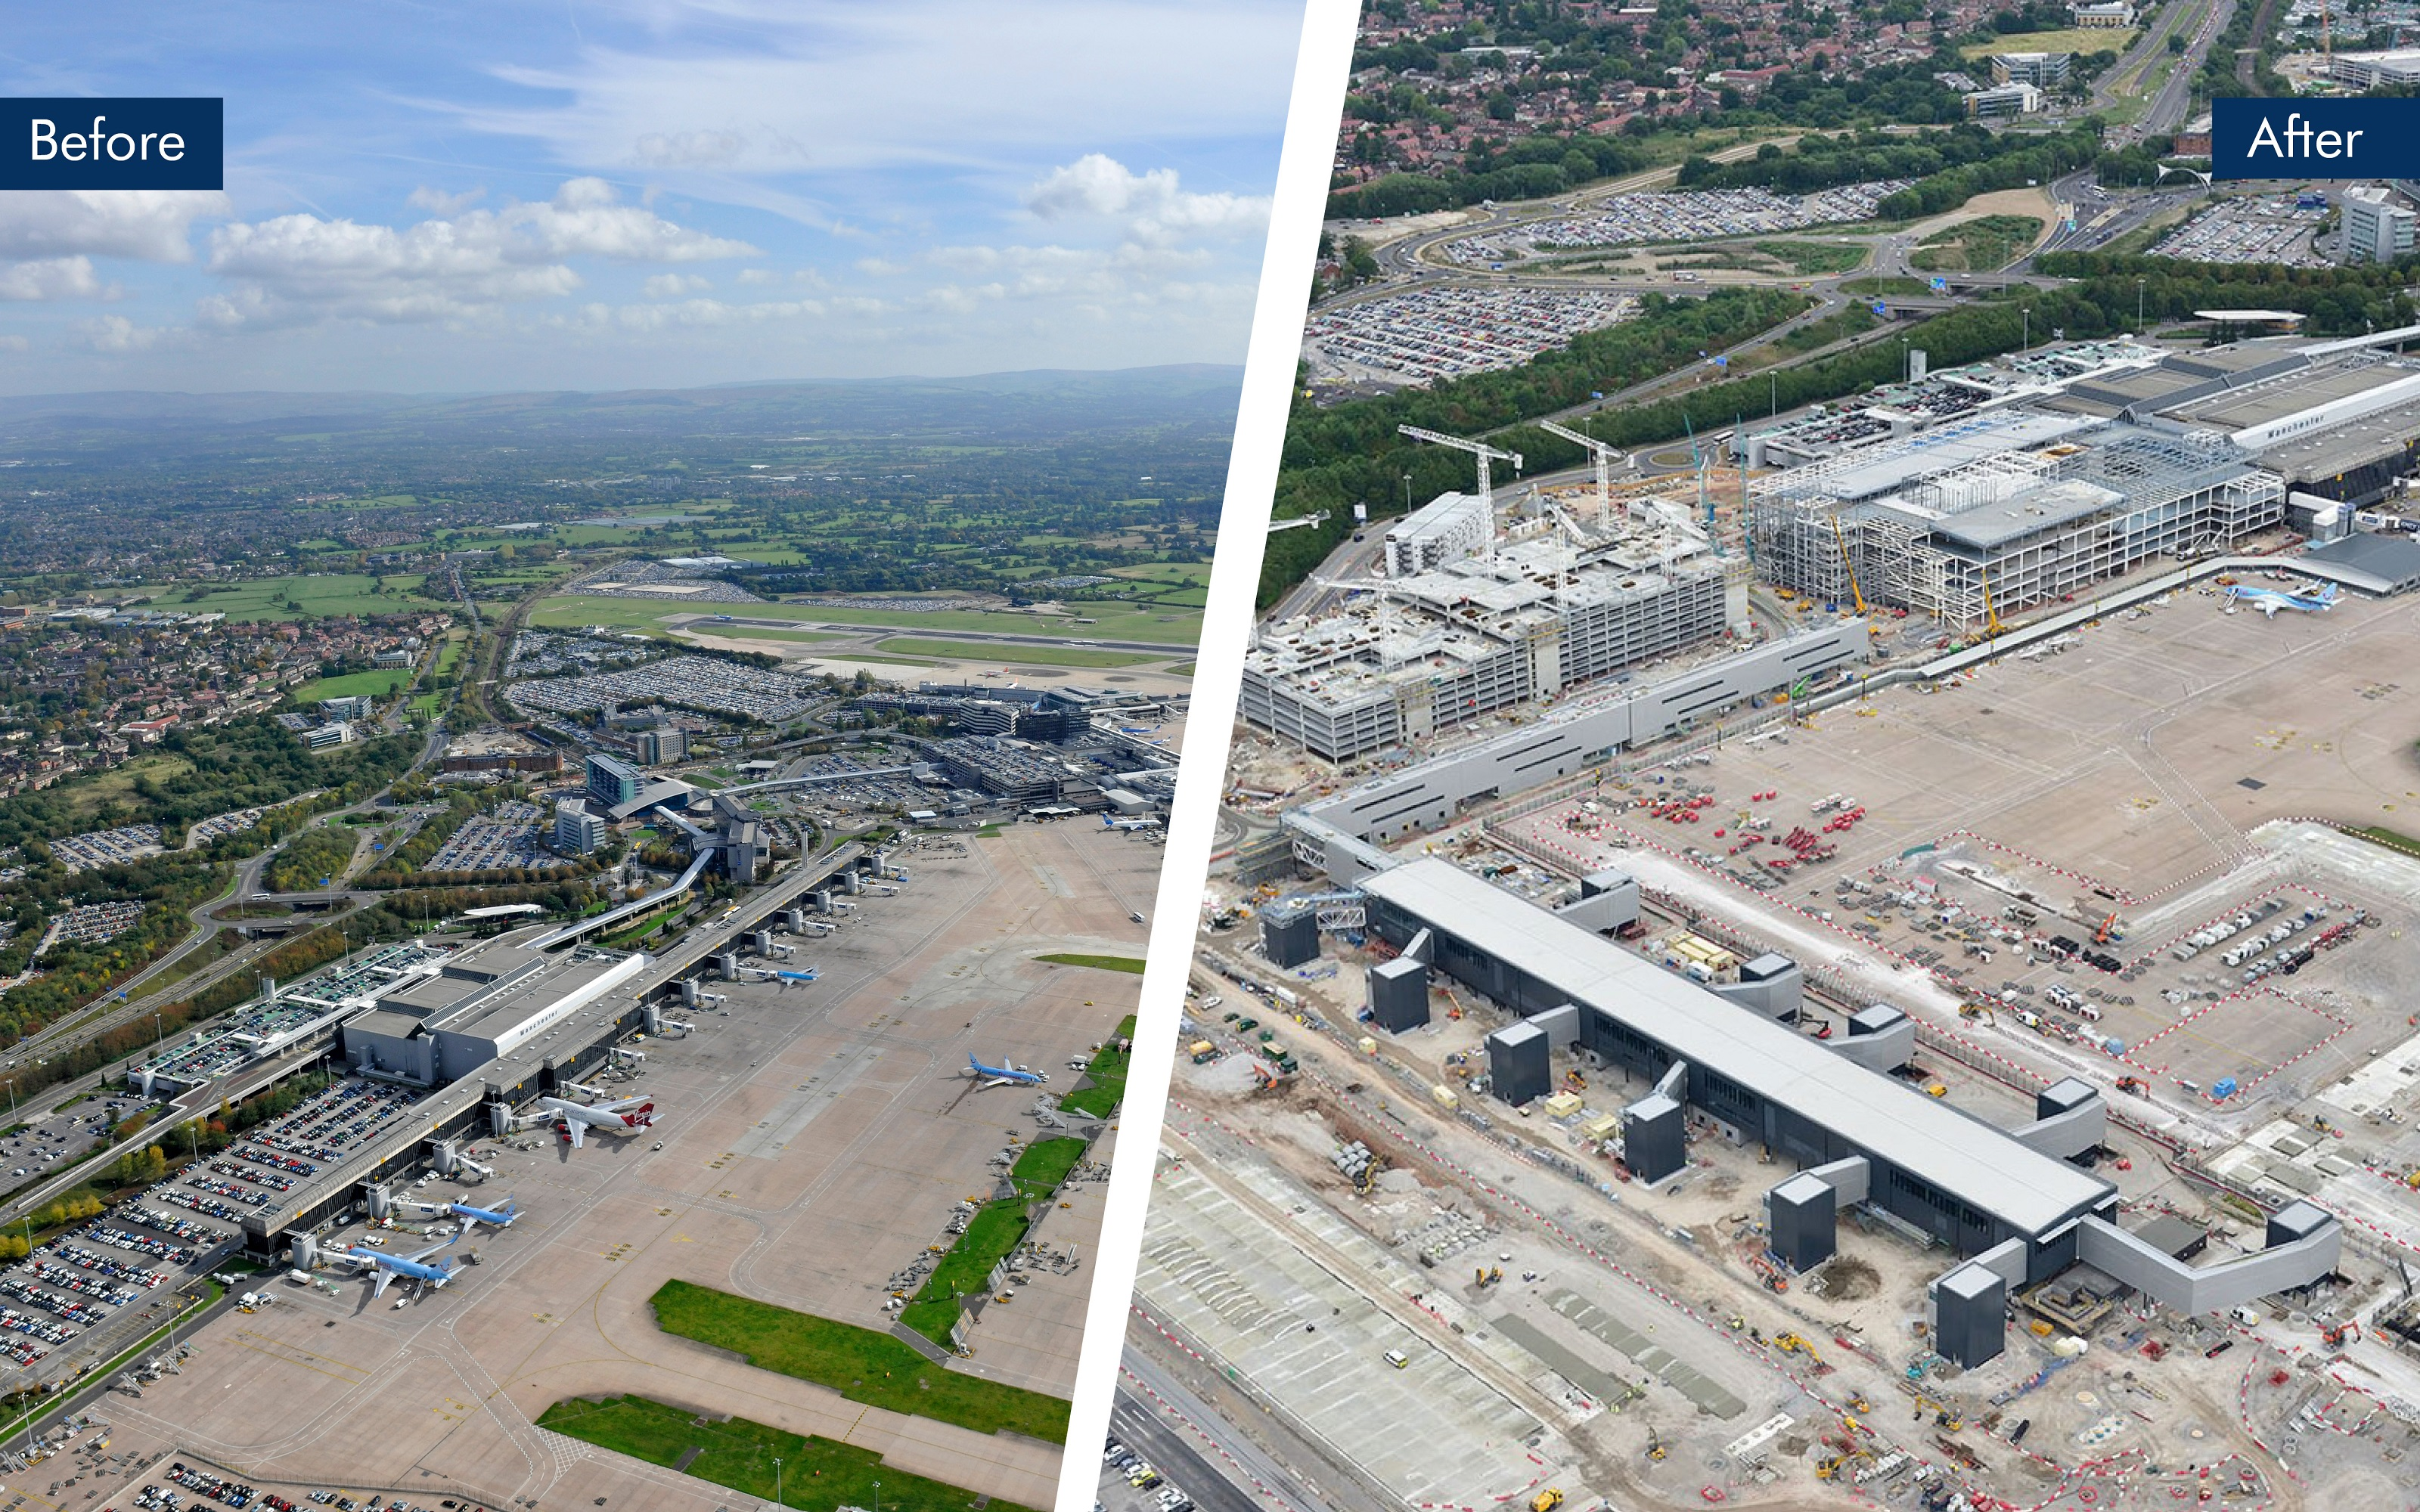 One year on manchester airport marks construction milestone in manchester airport marks construction milestone in terminal transformation program before m4hsunfo